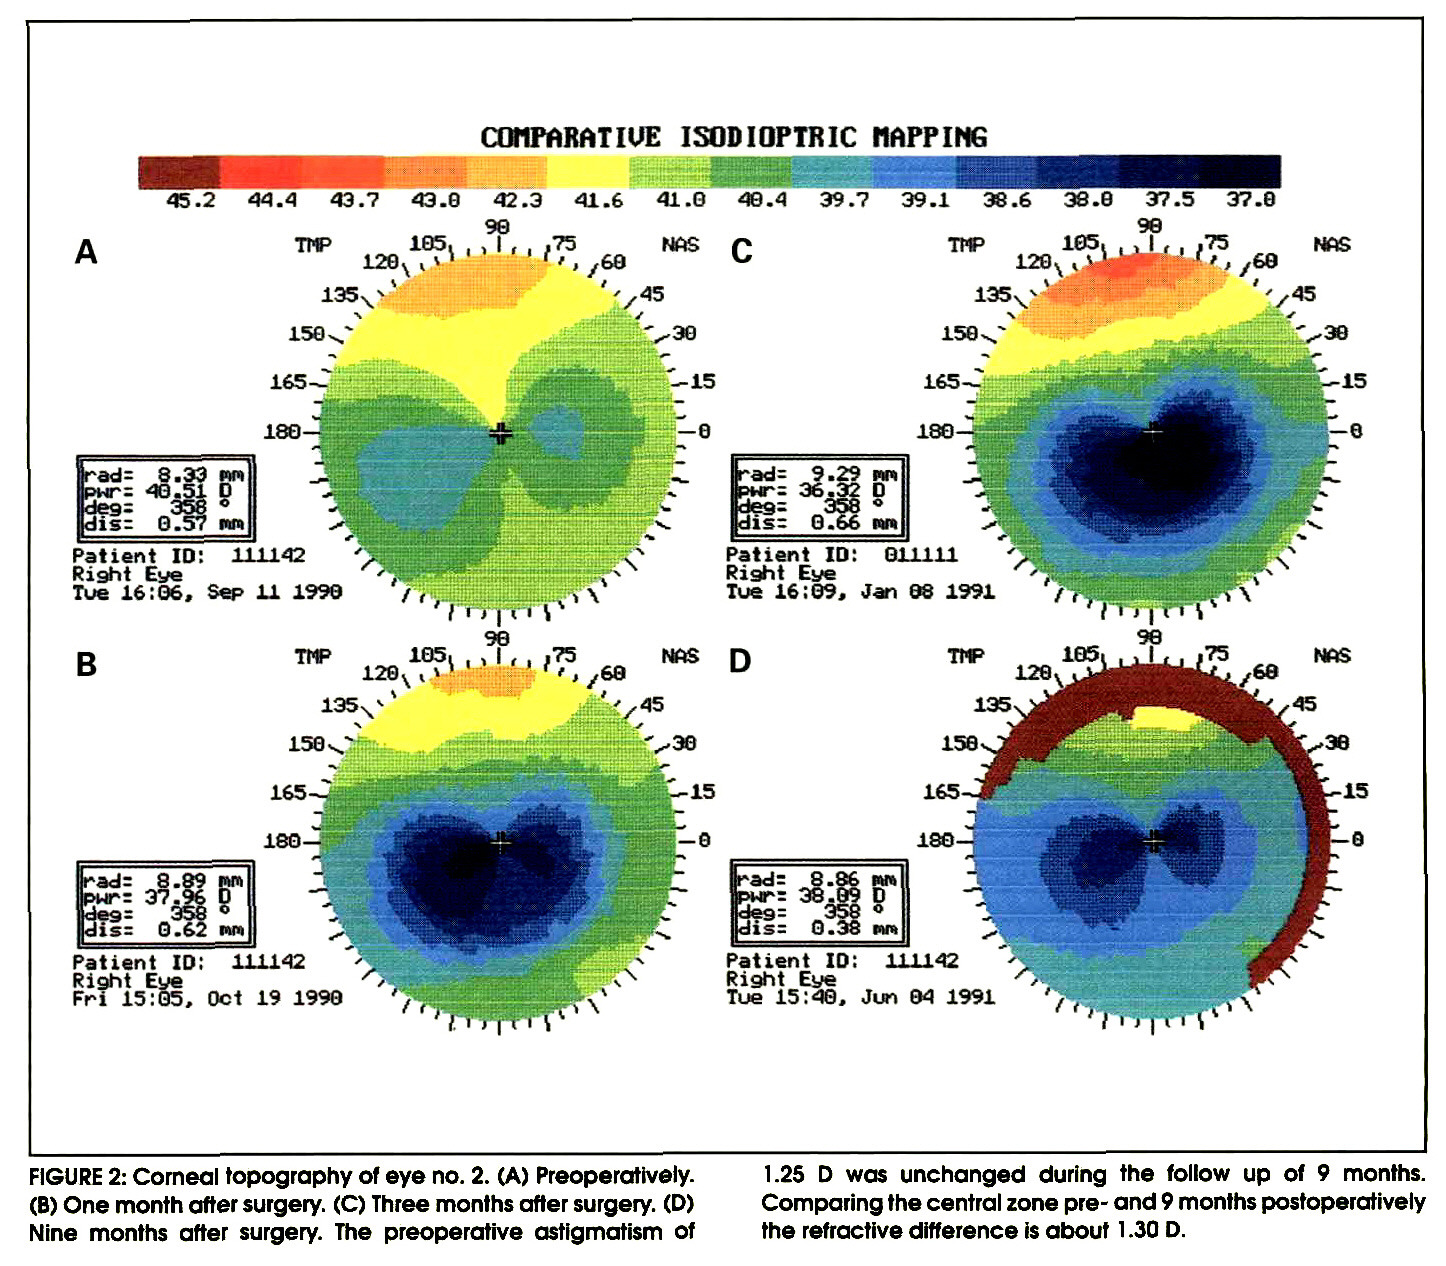 FIGURE 2: Corneal topography of eye no. 2. (A) Preoperatively. (B) One month after surgery. (C) Three months after surgery. (D) Nine months after surgery. The preoperative astigmatism of 1.25 D was unchanged during the follow up of 9 months. Comparing the central zone pre- and 9 months postoperatively the refractive difference is about 1 .30 D.